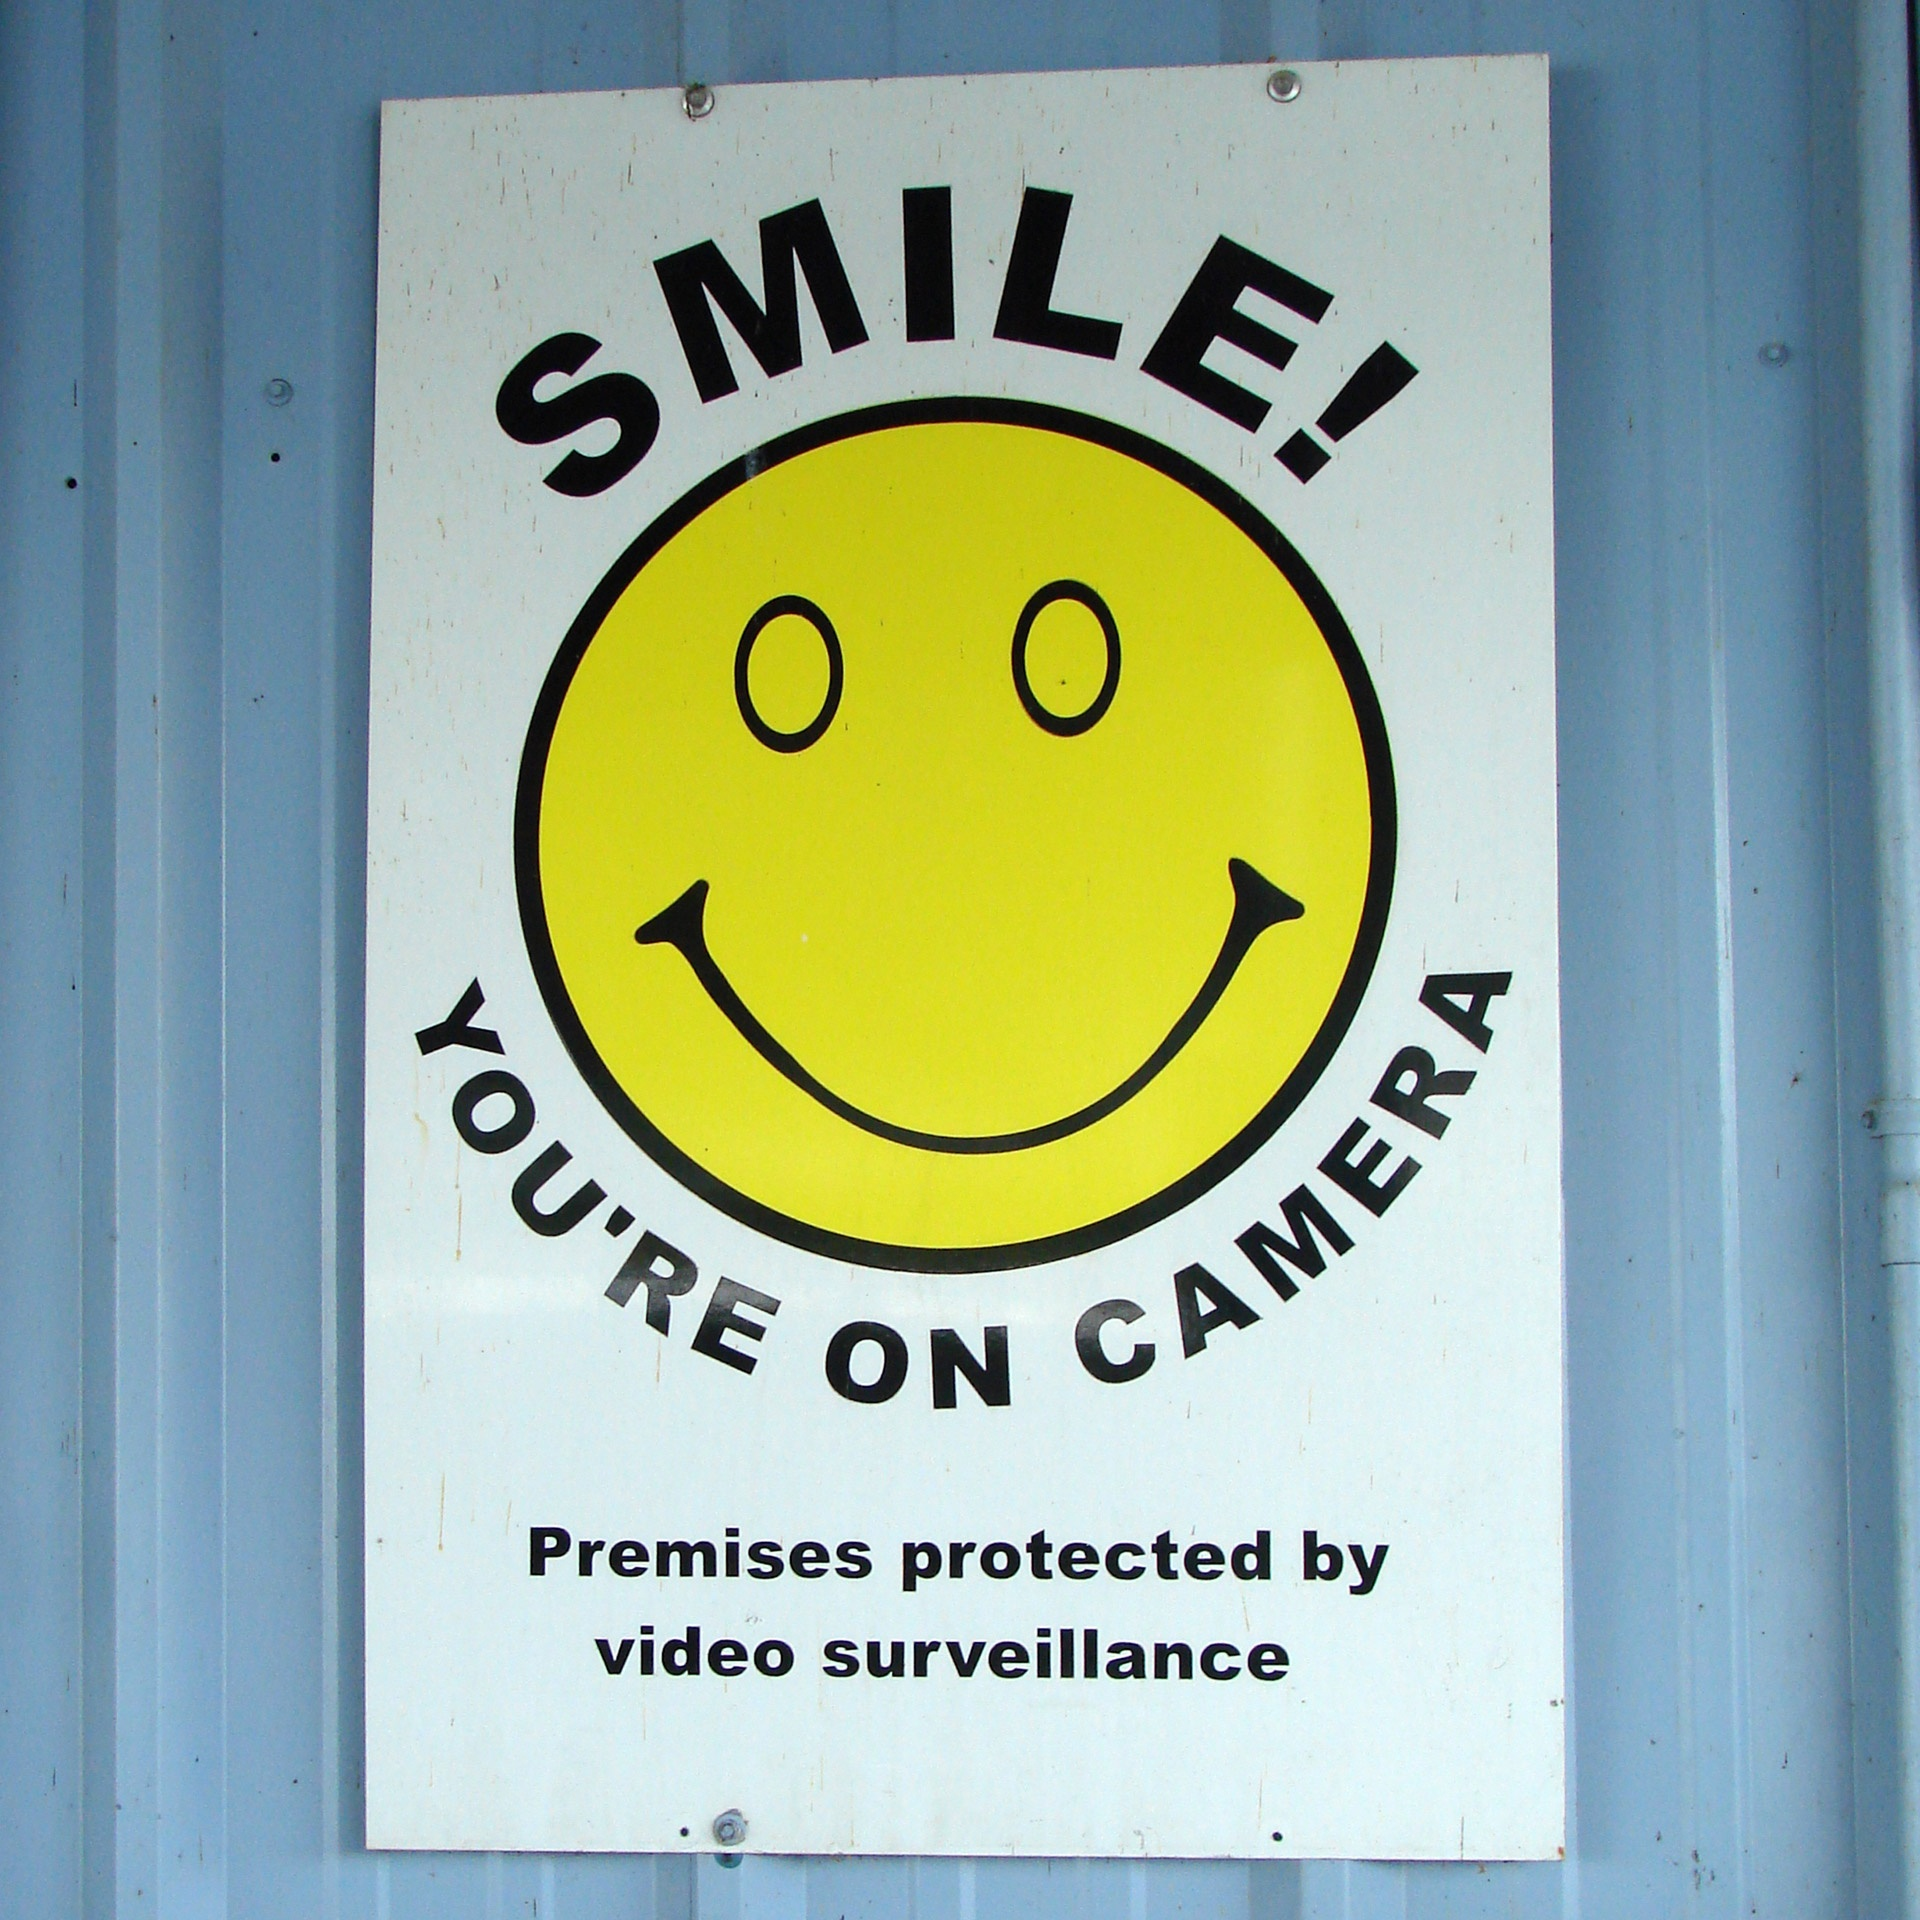 Free Printable Smile Your On Camera Sign - Collections Photos Camera - Free Printable Smile Your On Camera Sign